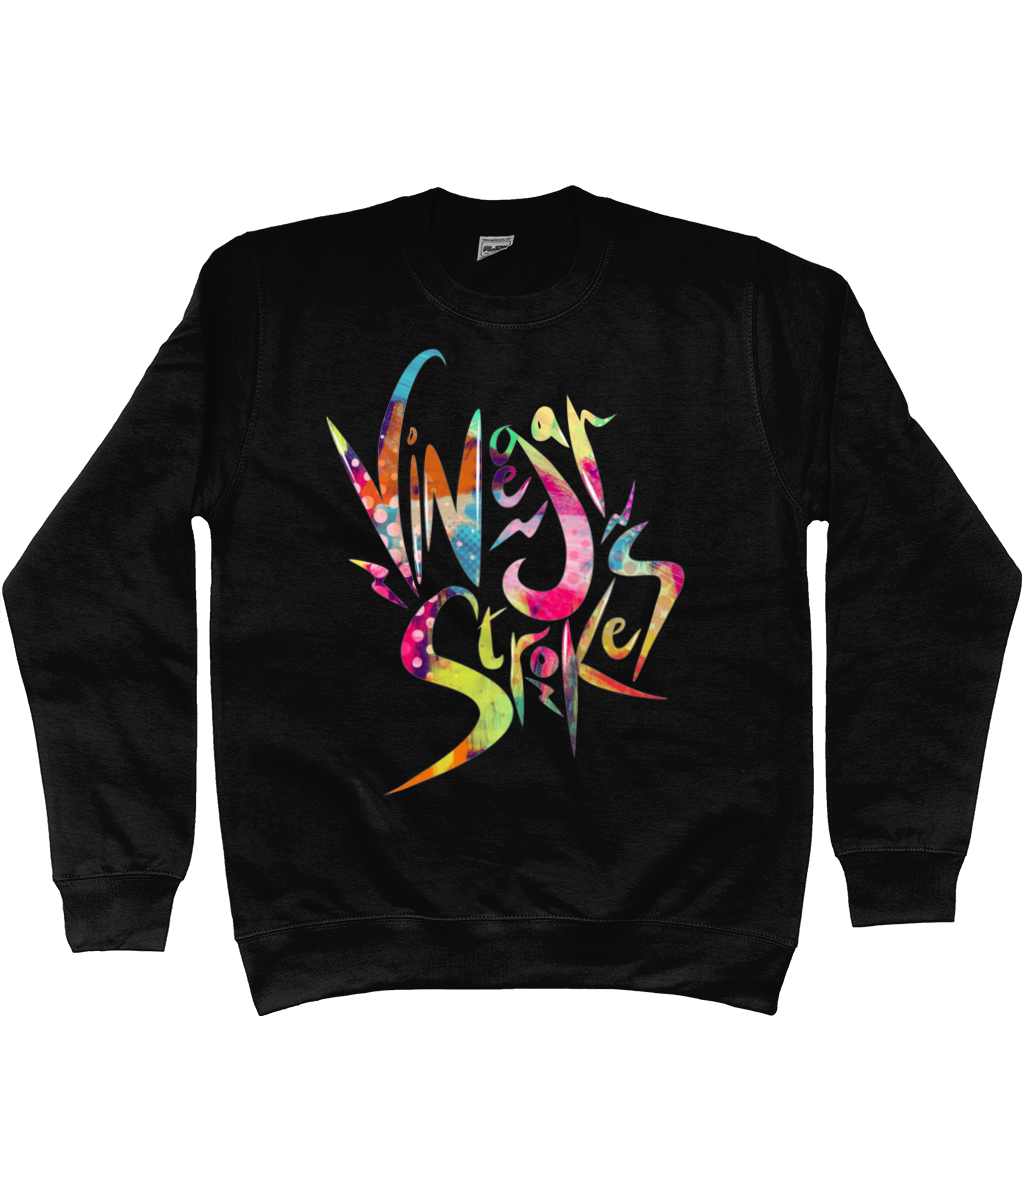 Vinegar Strokes Logo Sweatshirt - Official Merchandise